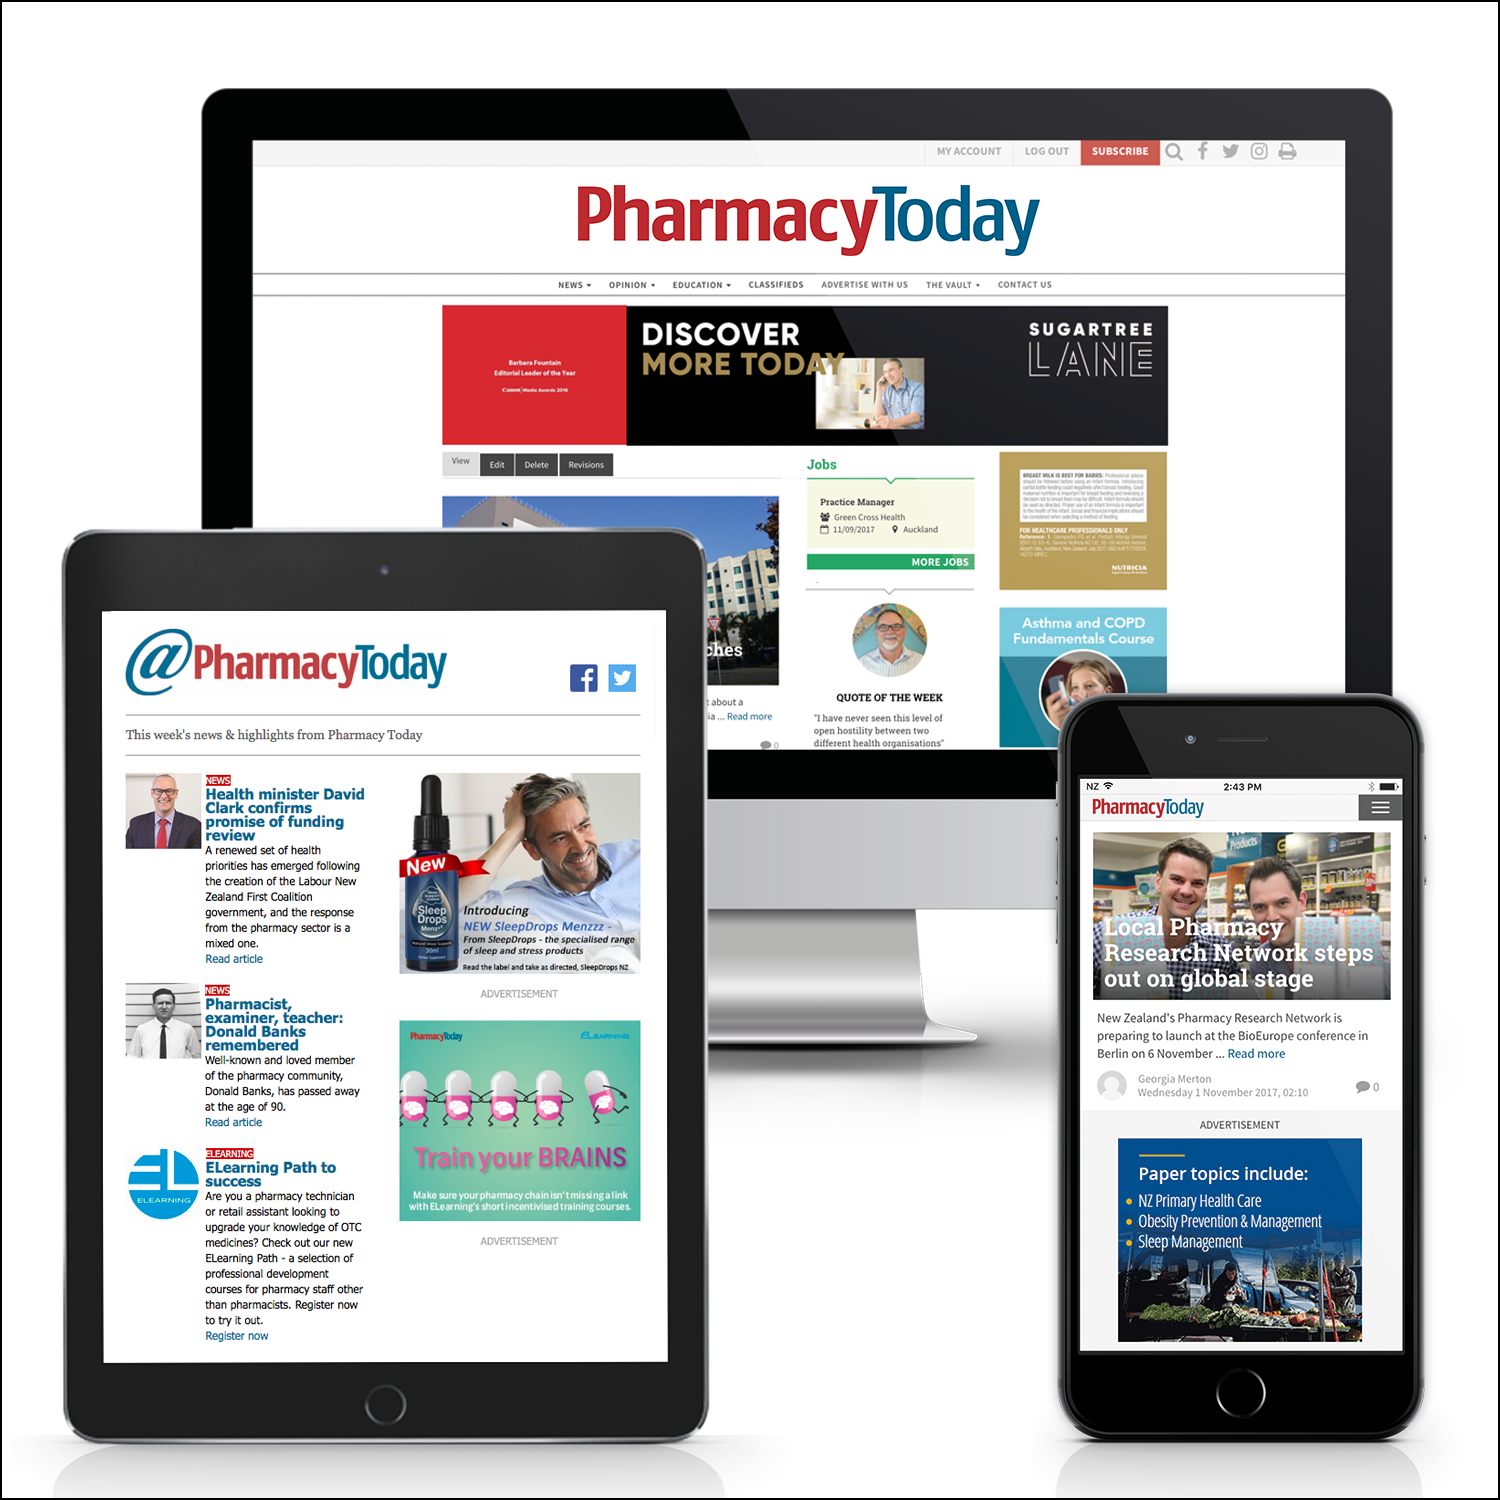 Pharmacy Today digital ads examples